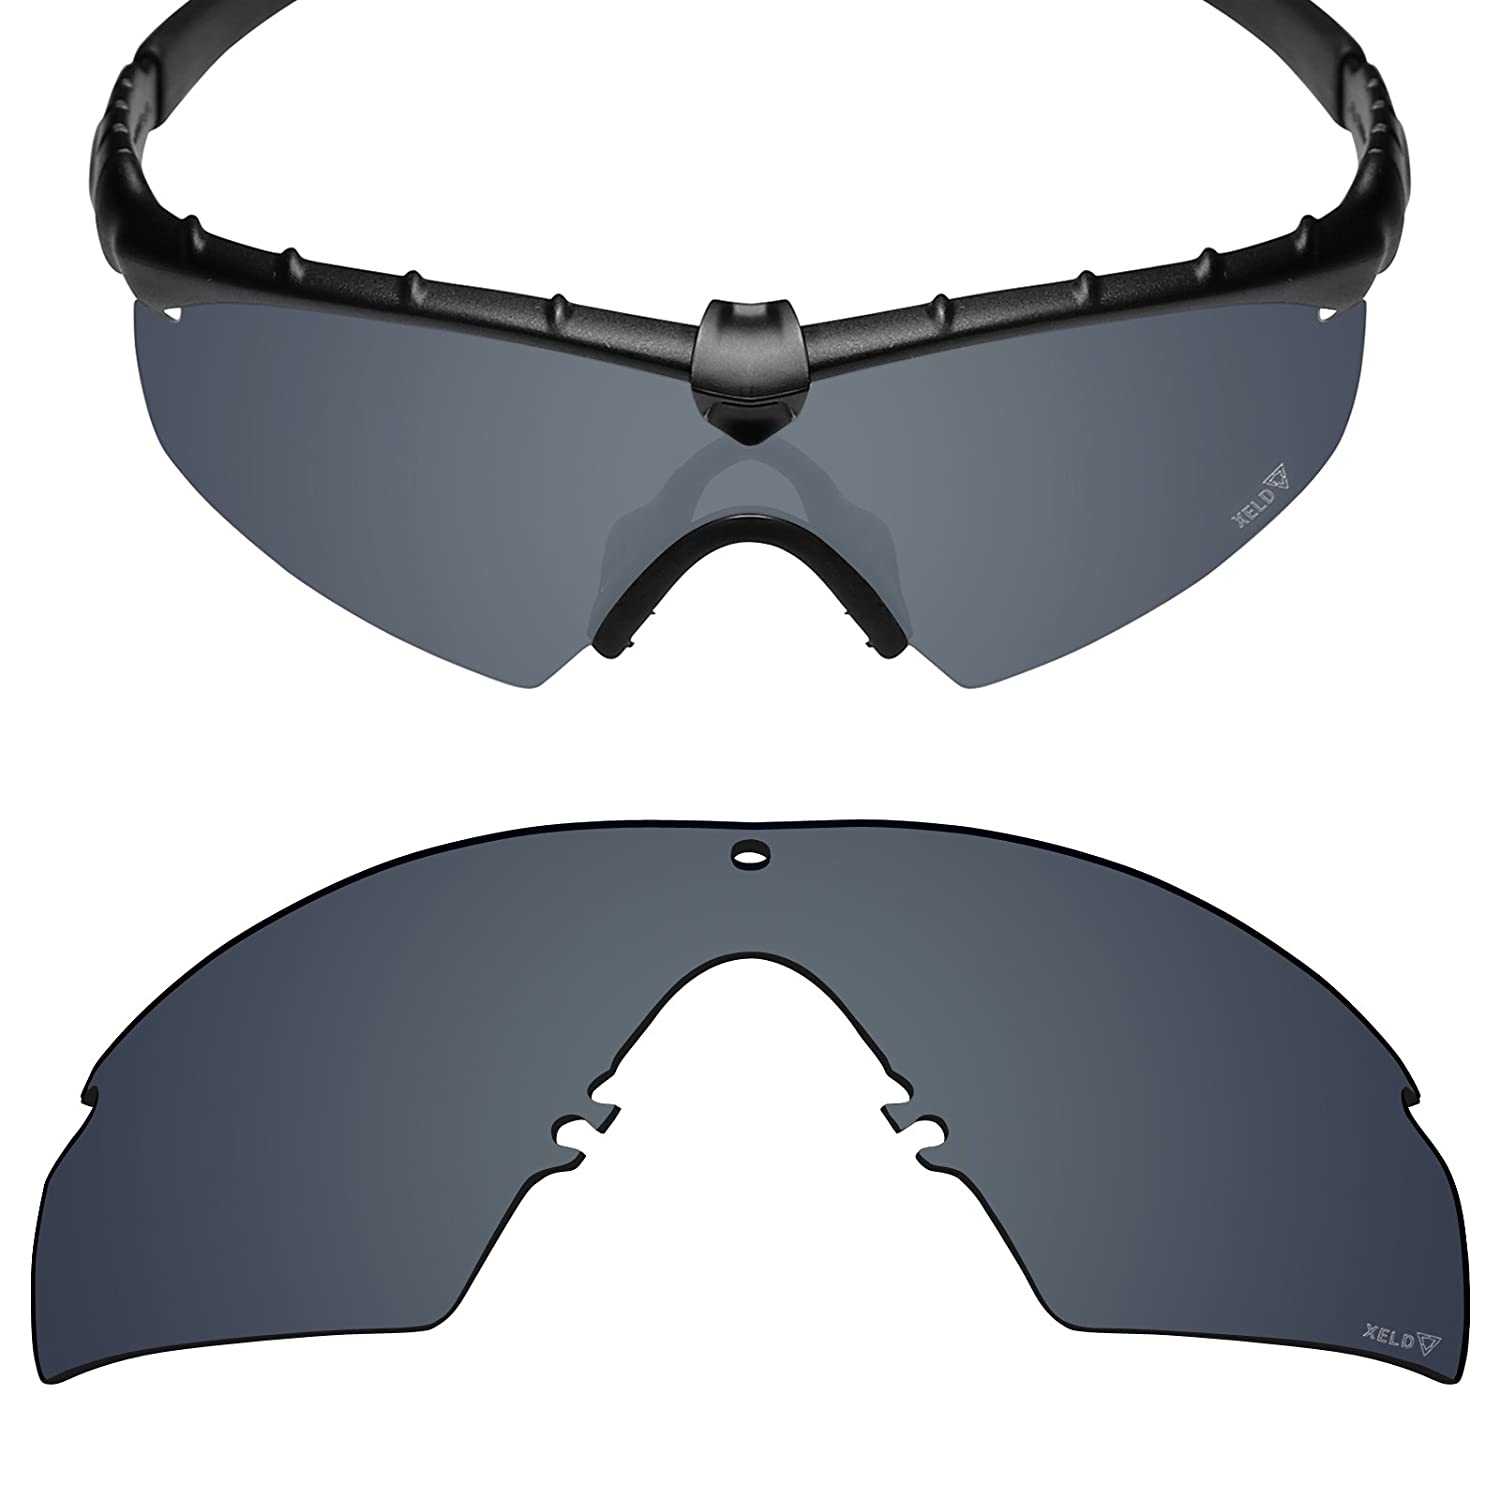 1a12daca422 Mryok Replacement Lenses for Oakley Industrial M Frame 2.0 - Options  MryLens OY253SHC03SC